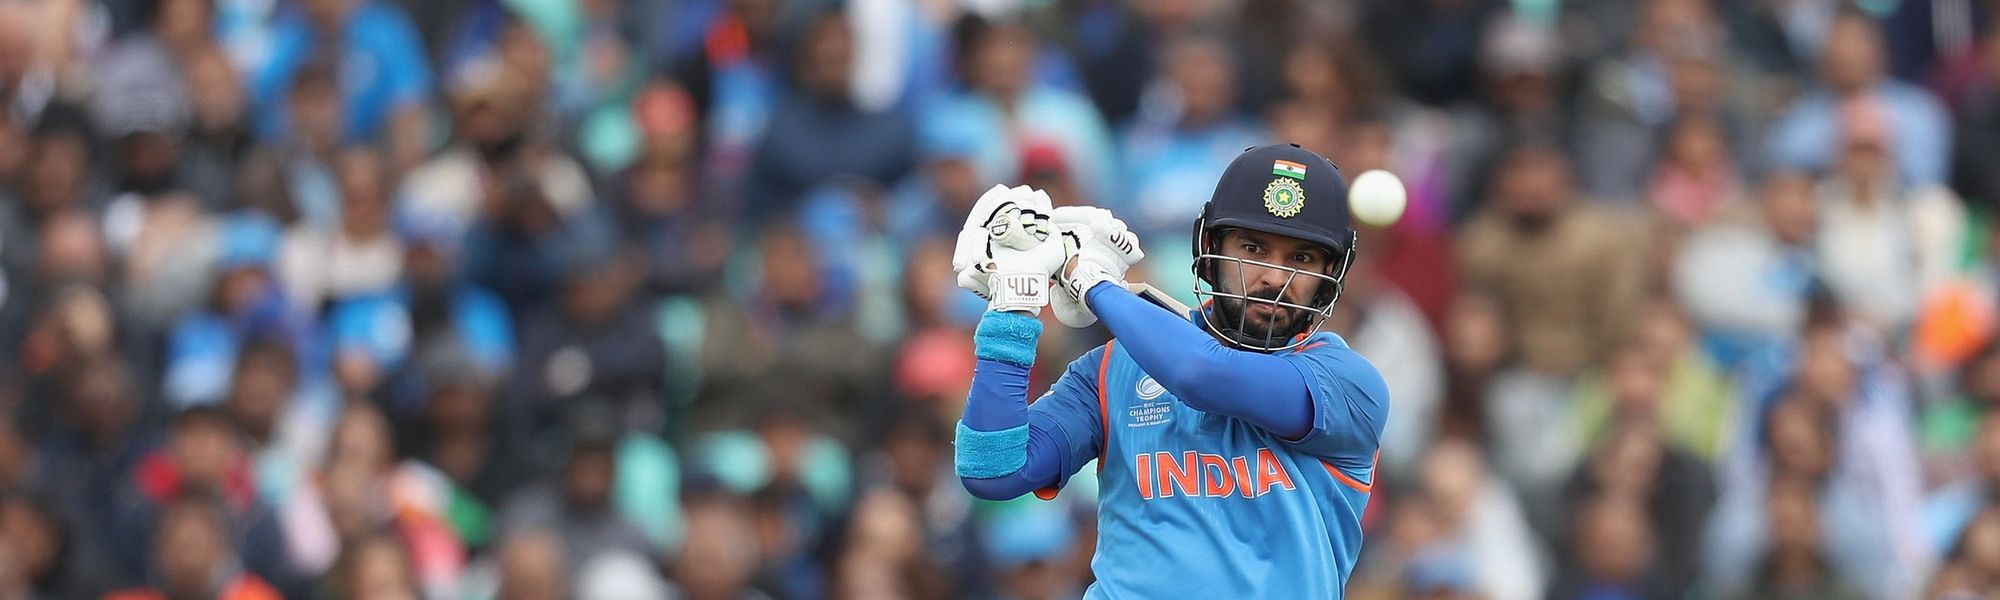 Yuvraj Singh has announced his retirement from all international cricket